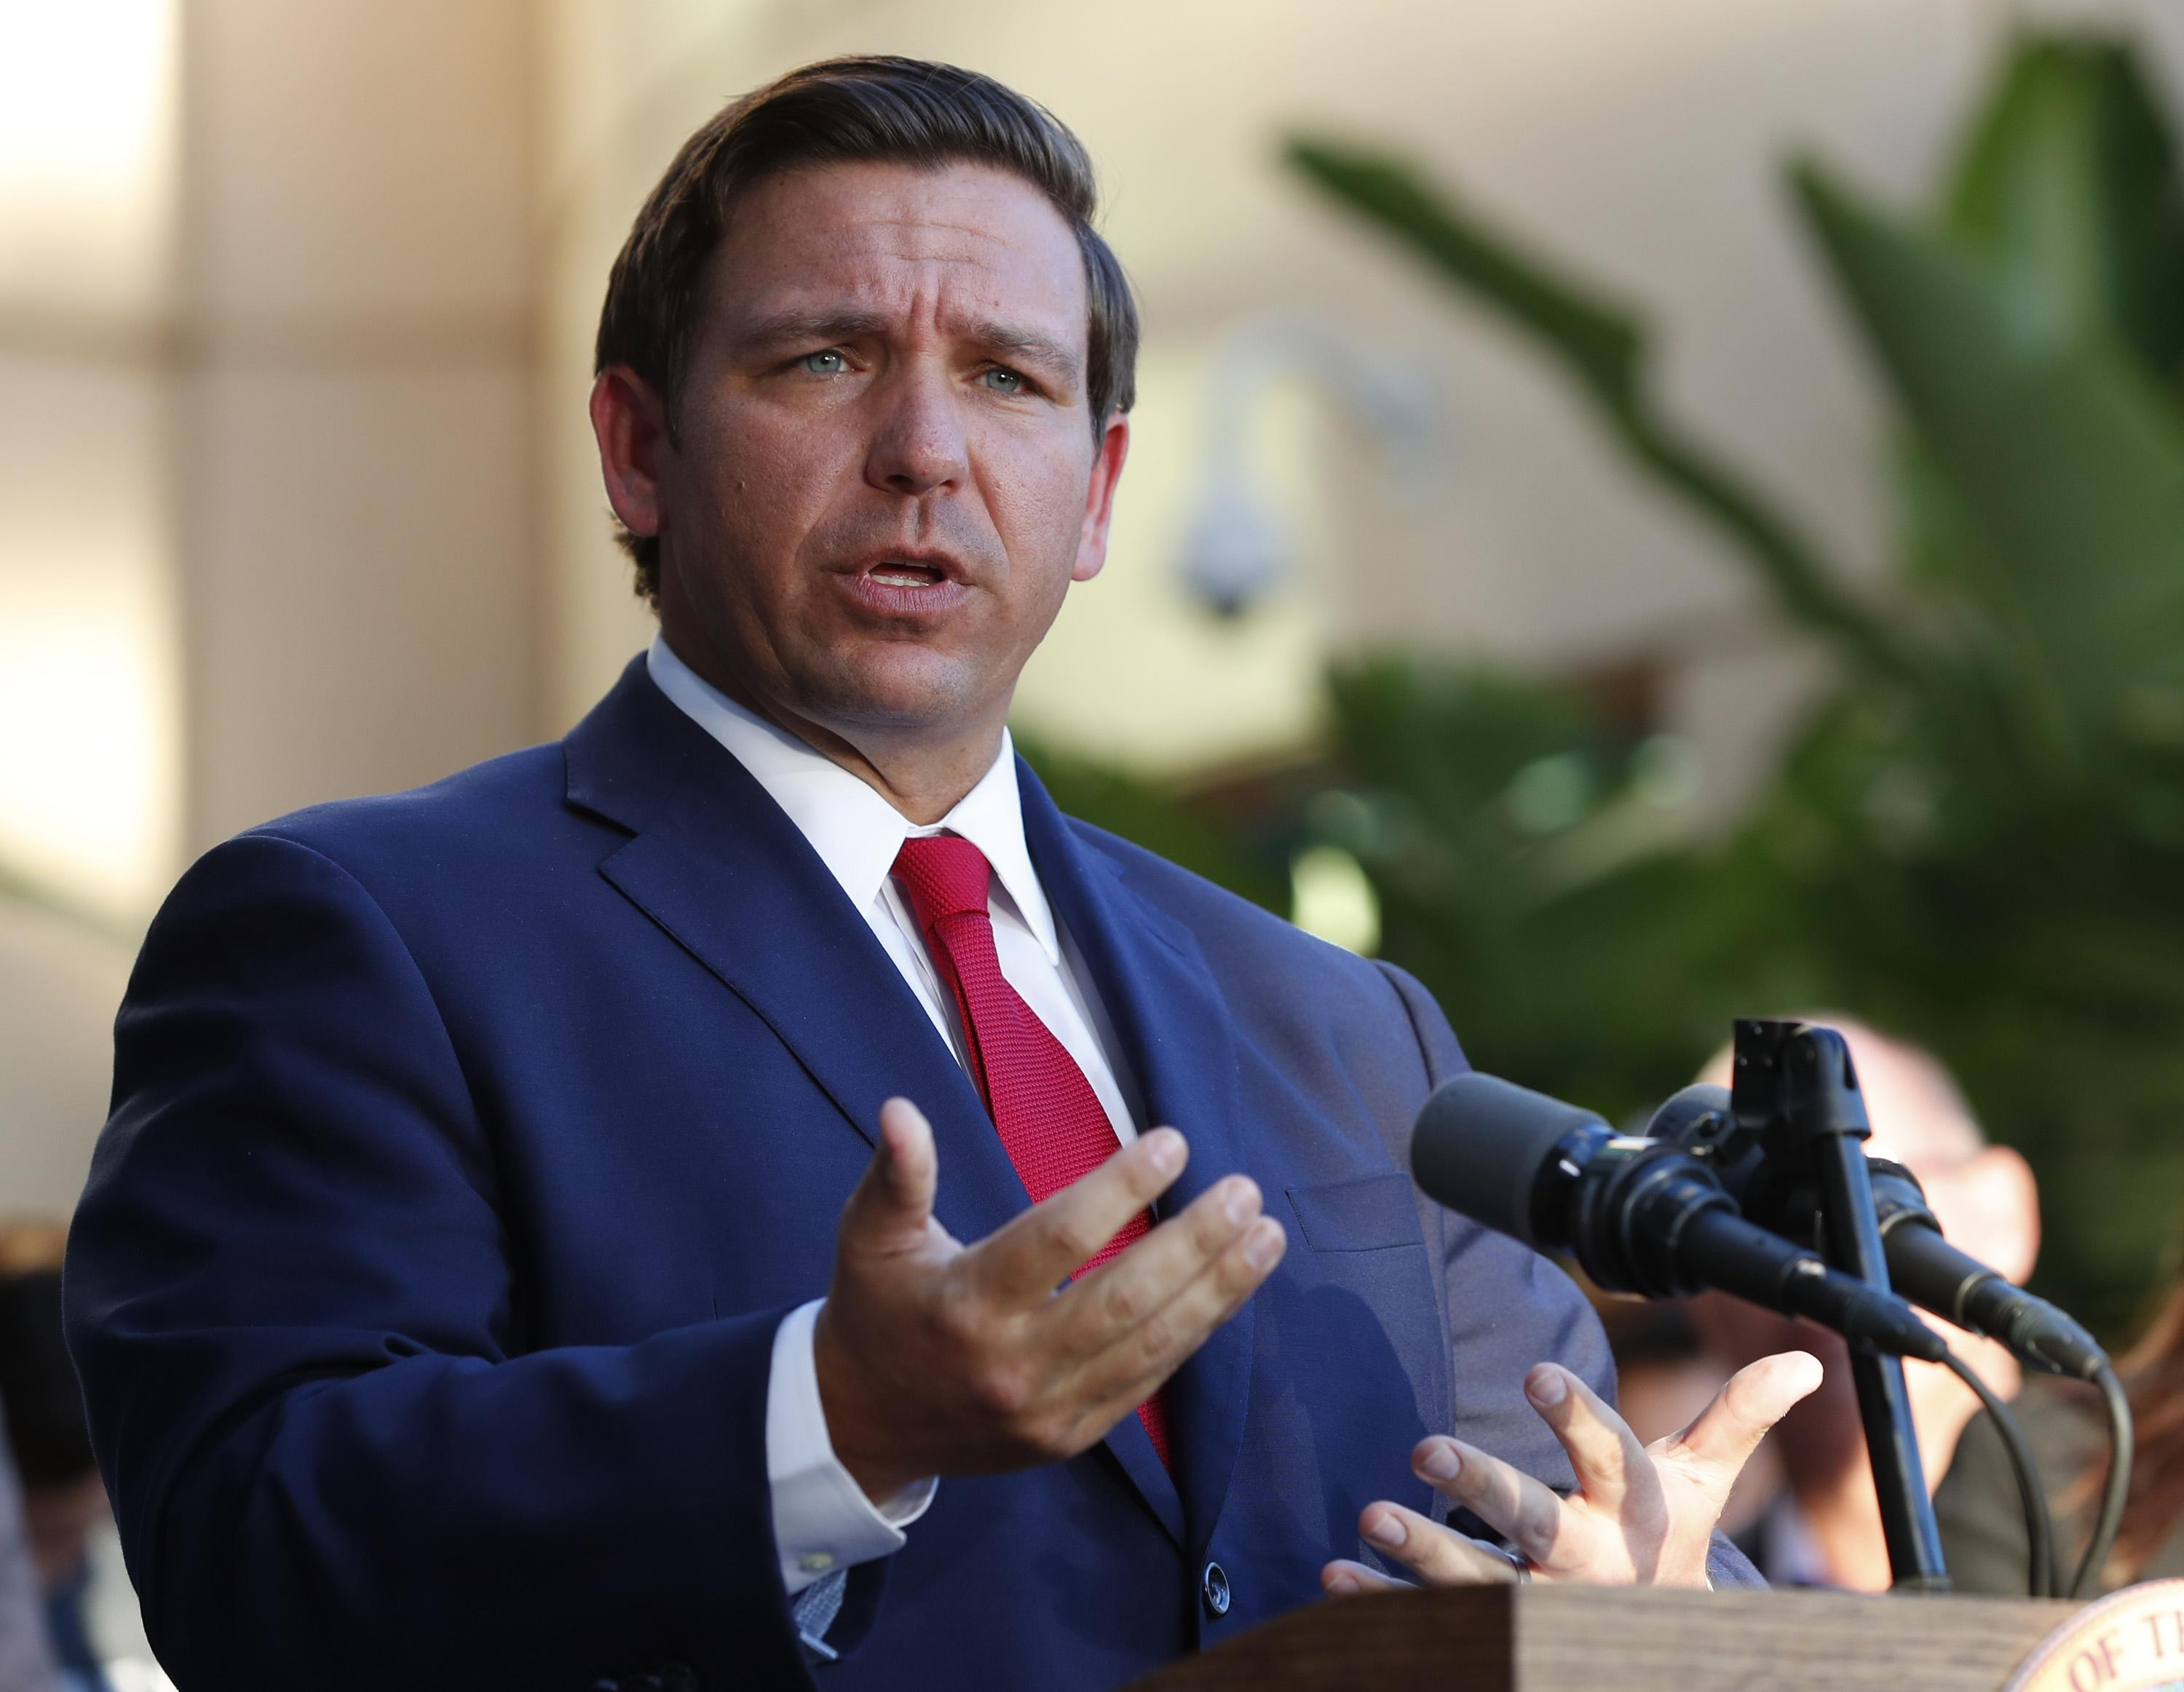 Ron DeSantis image via the Gainesville Sun